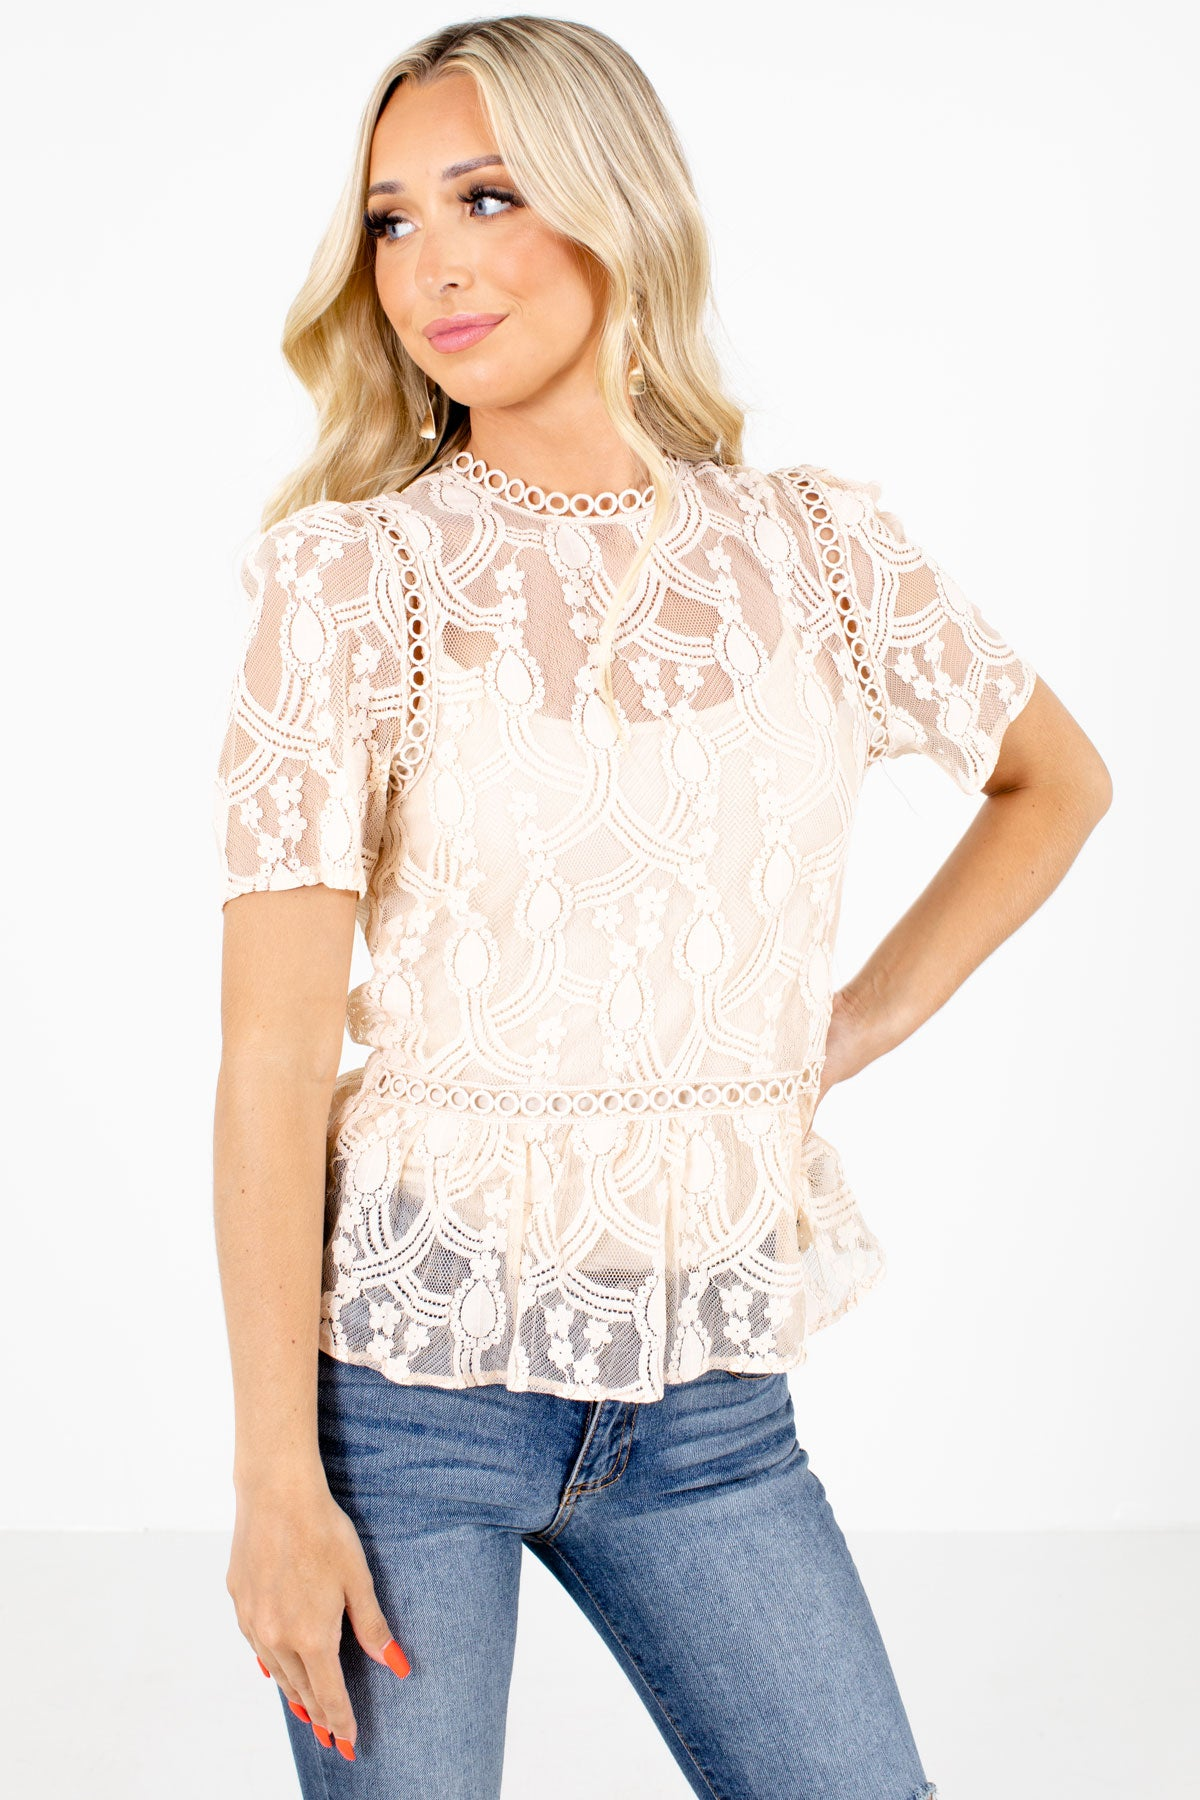 Cream Peplum Style Hem Boutique Blouses for Women